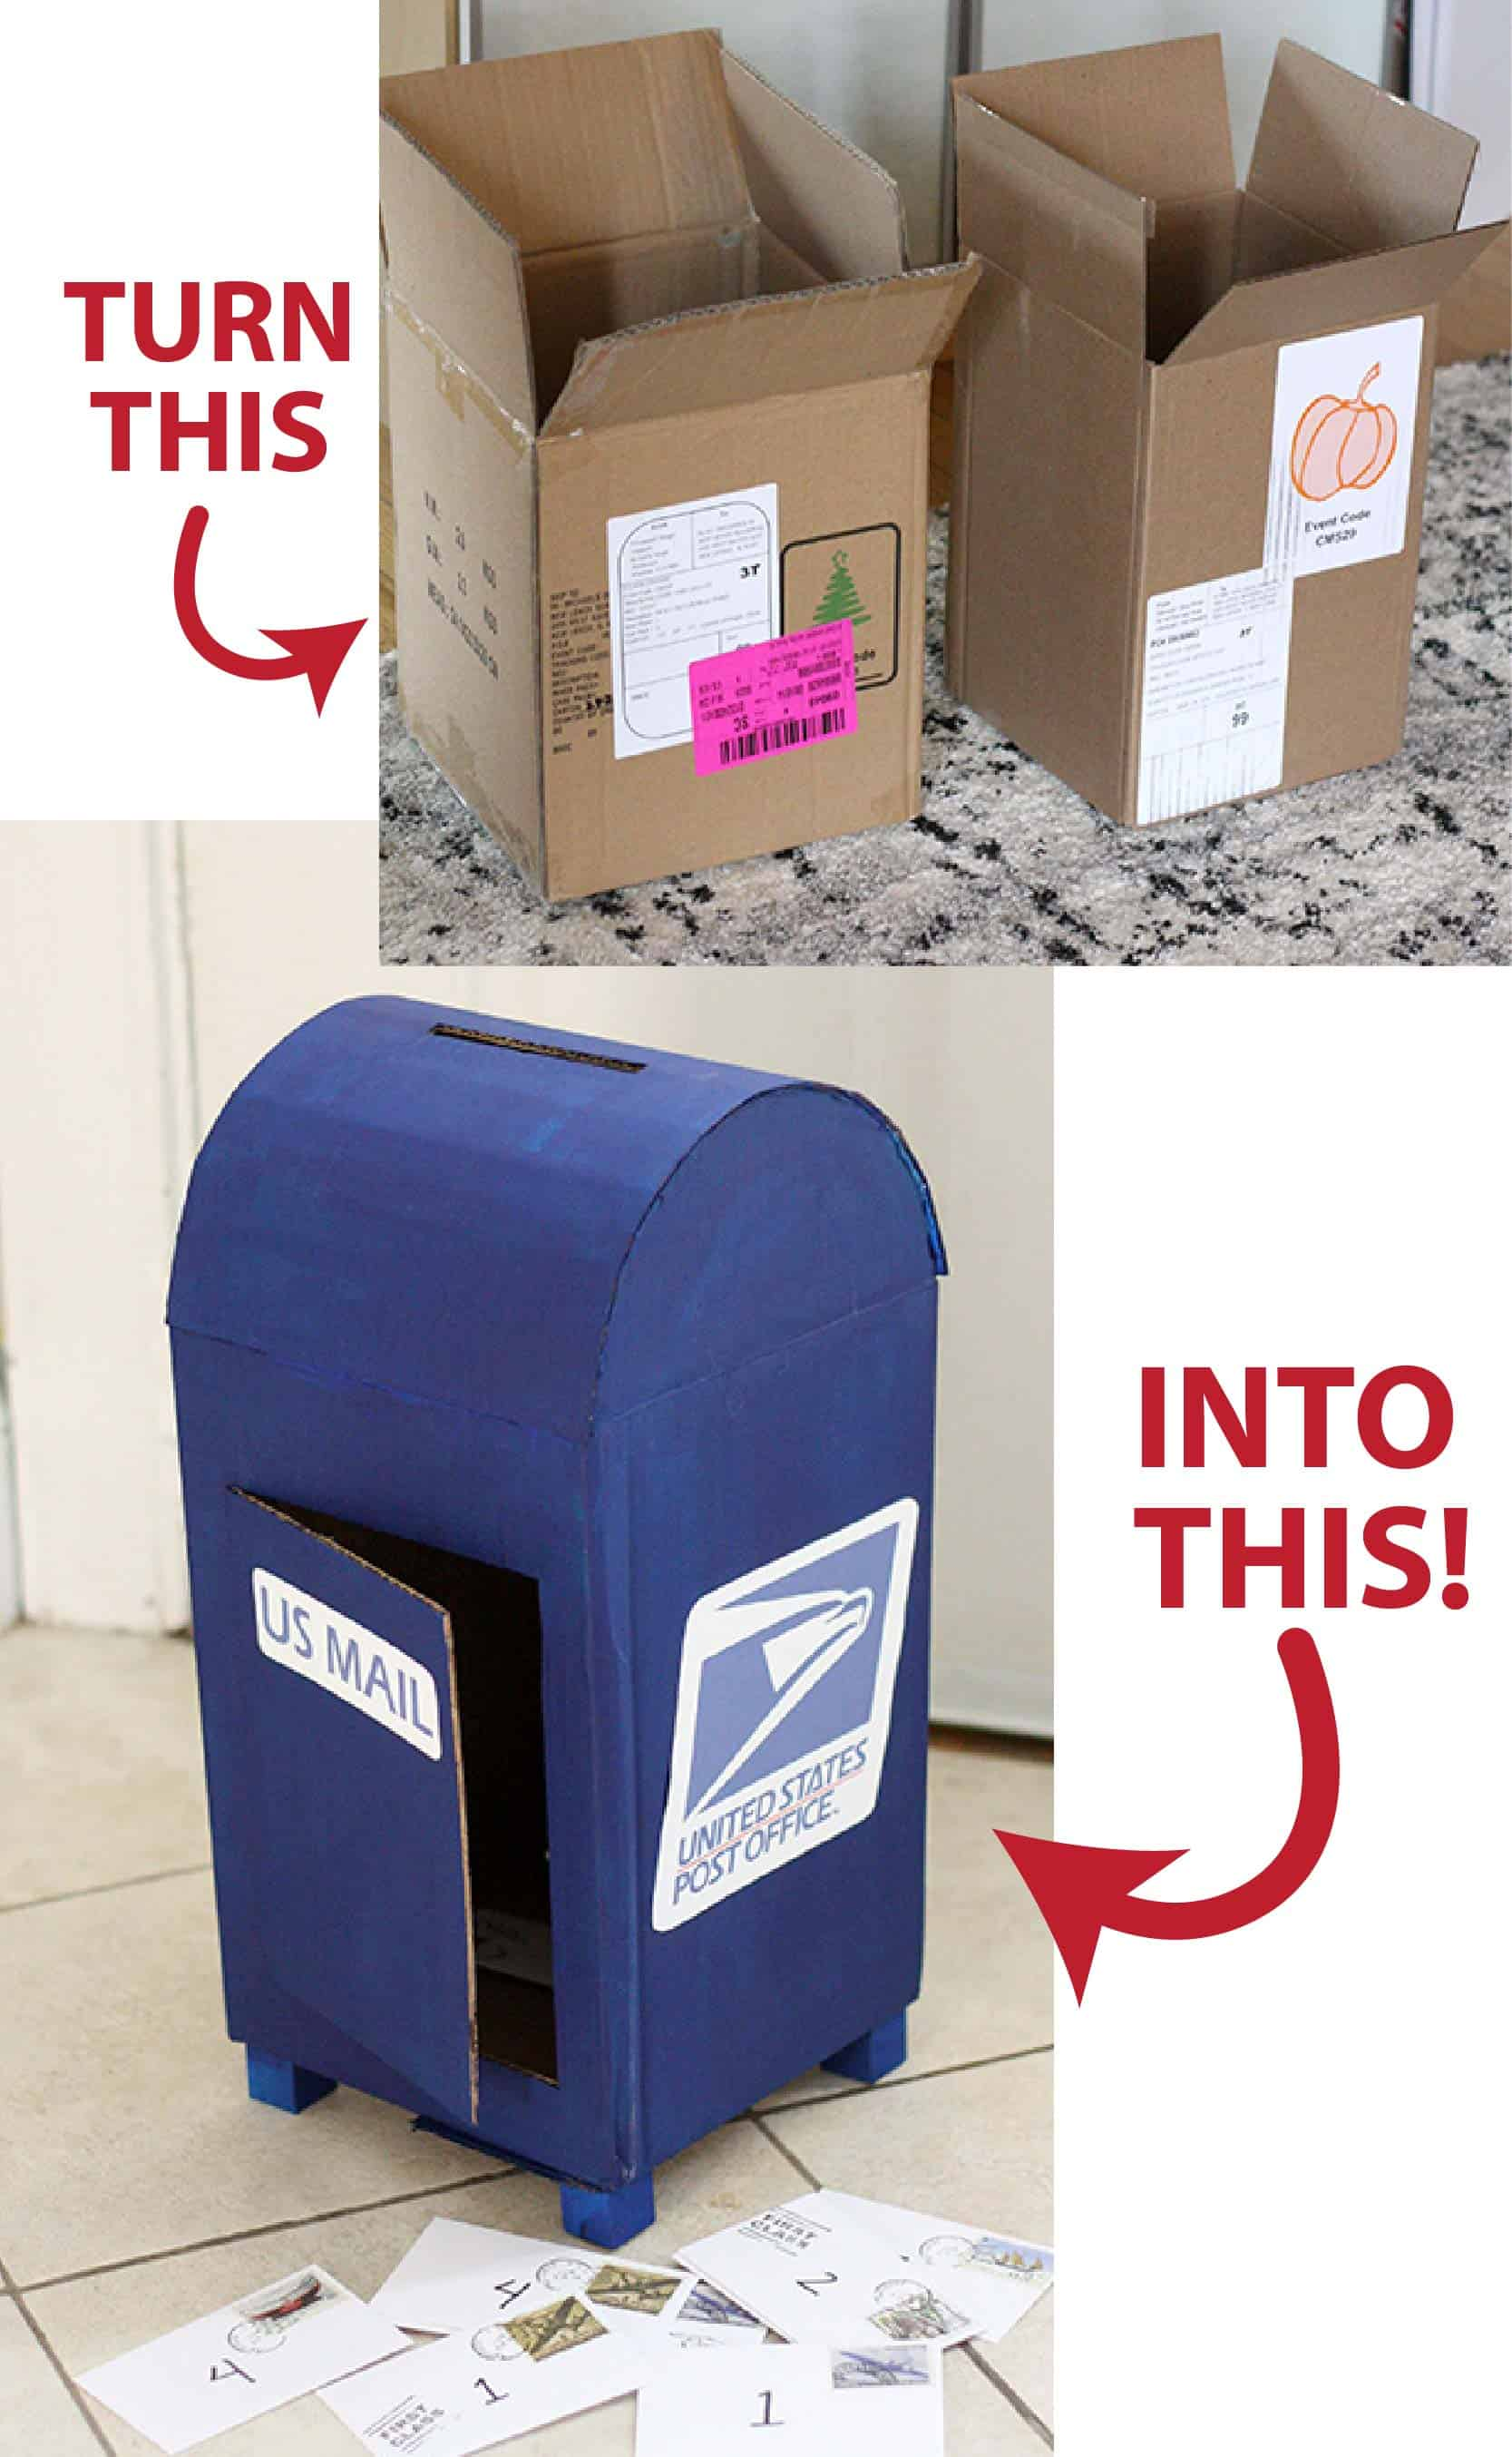 Upcycle an old cardboard box into a fun play mailbox with this great tutorial!